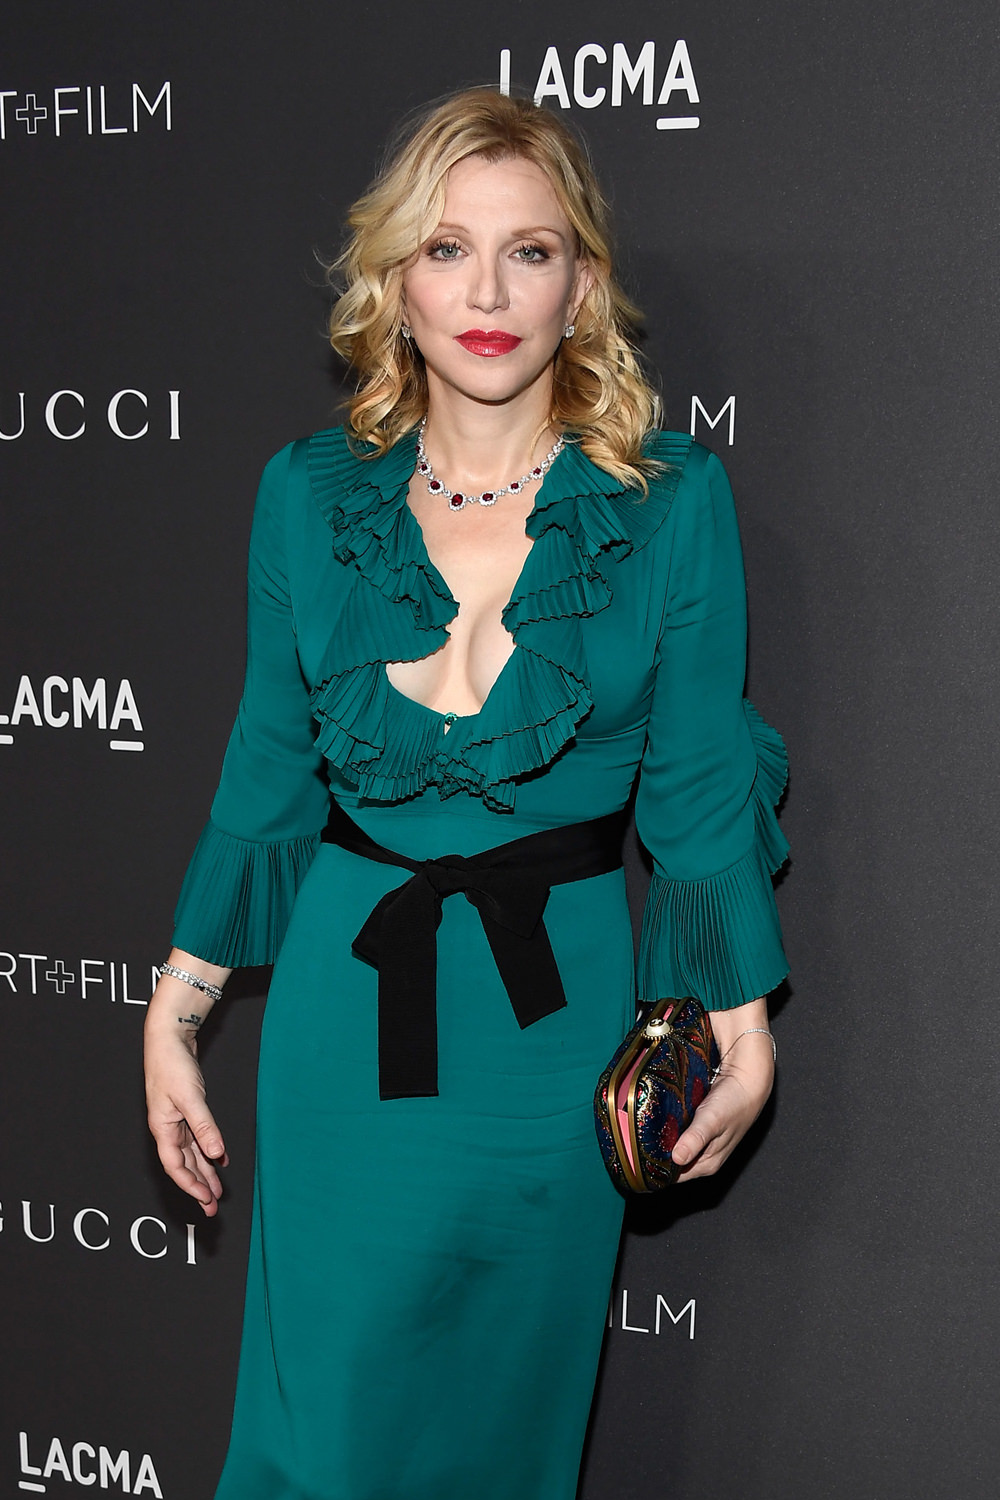 courtney-love-2016-lacma-art-film-gala-red-carpet-fashion-gucci-tom-lorenzo-site-3